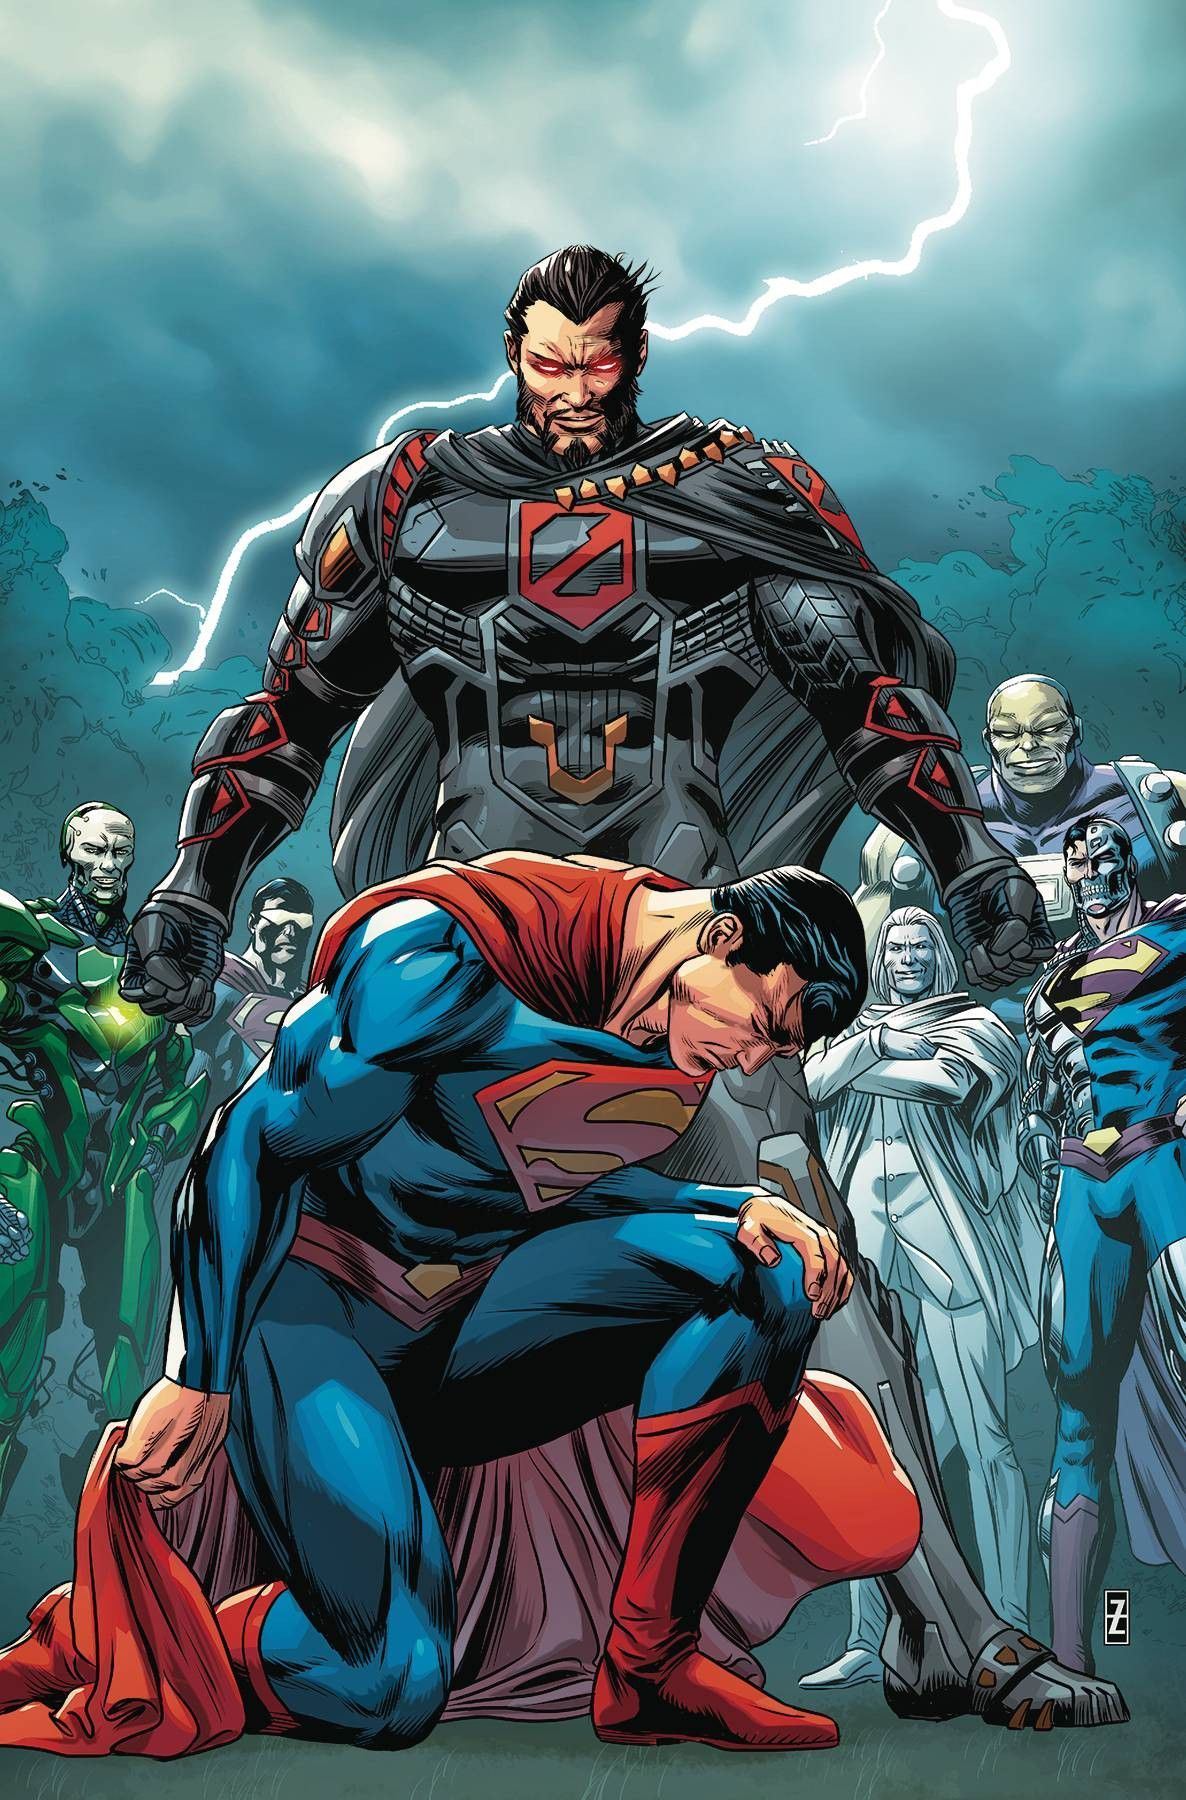 Action comics awesomely cool artwork pinterest comic